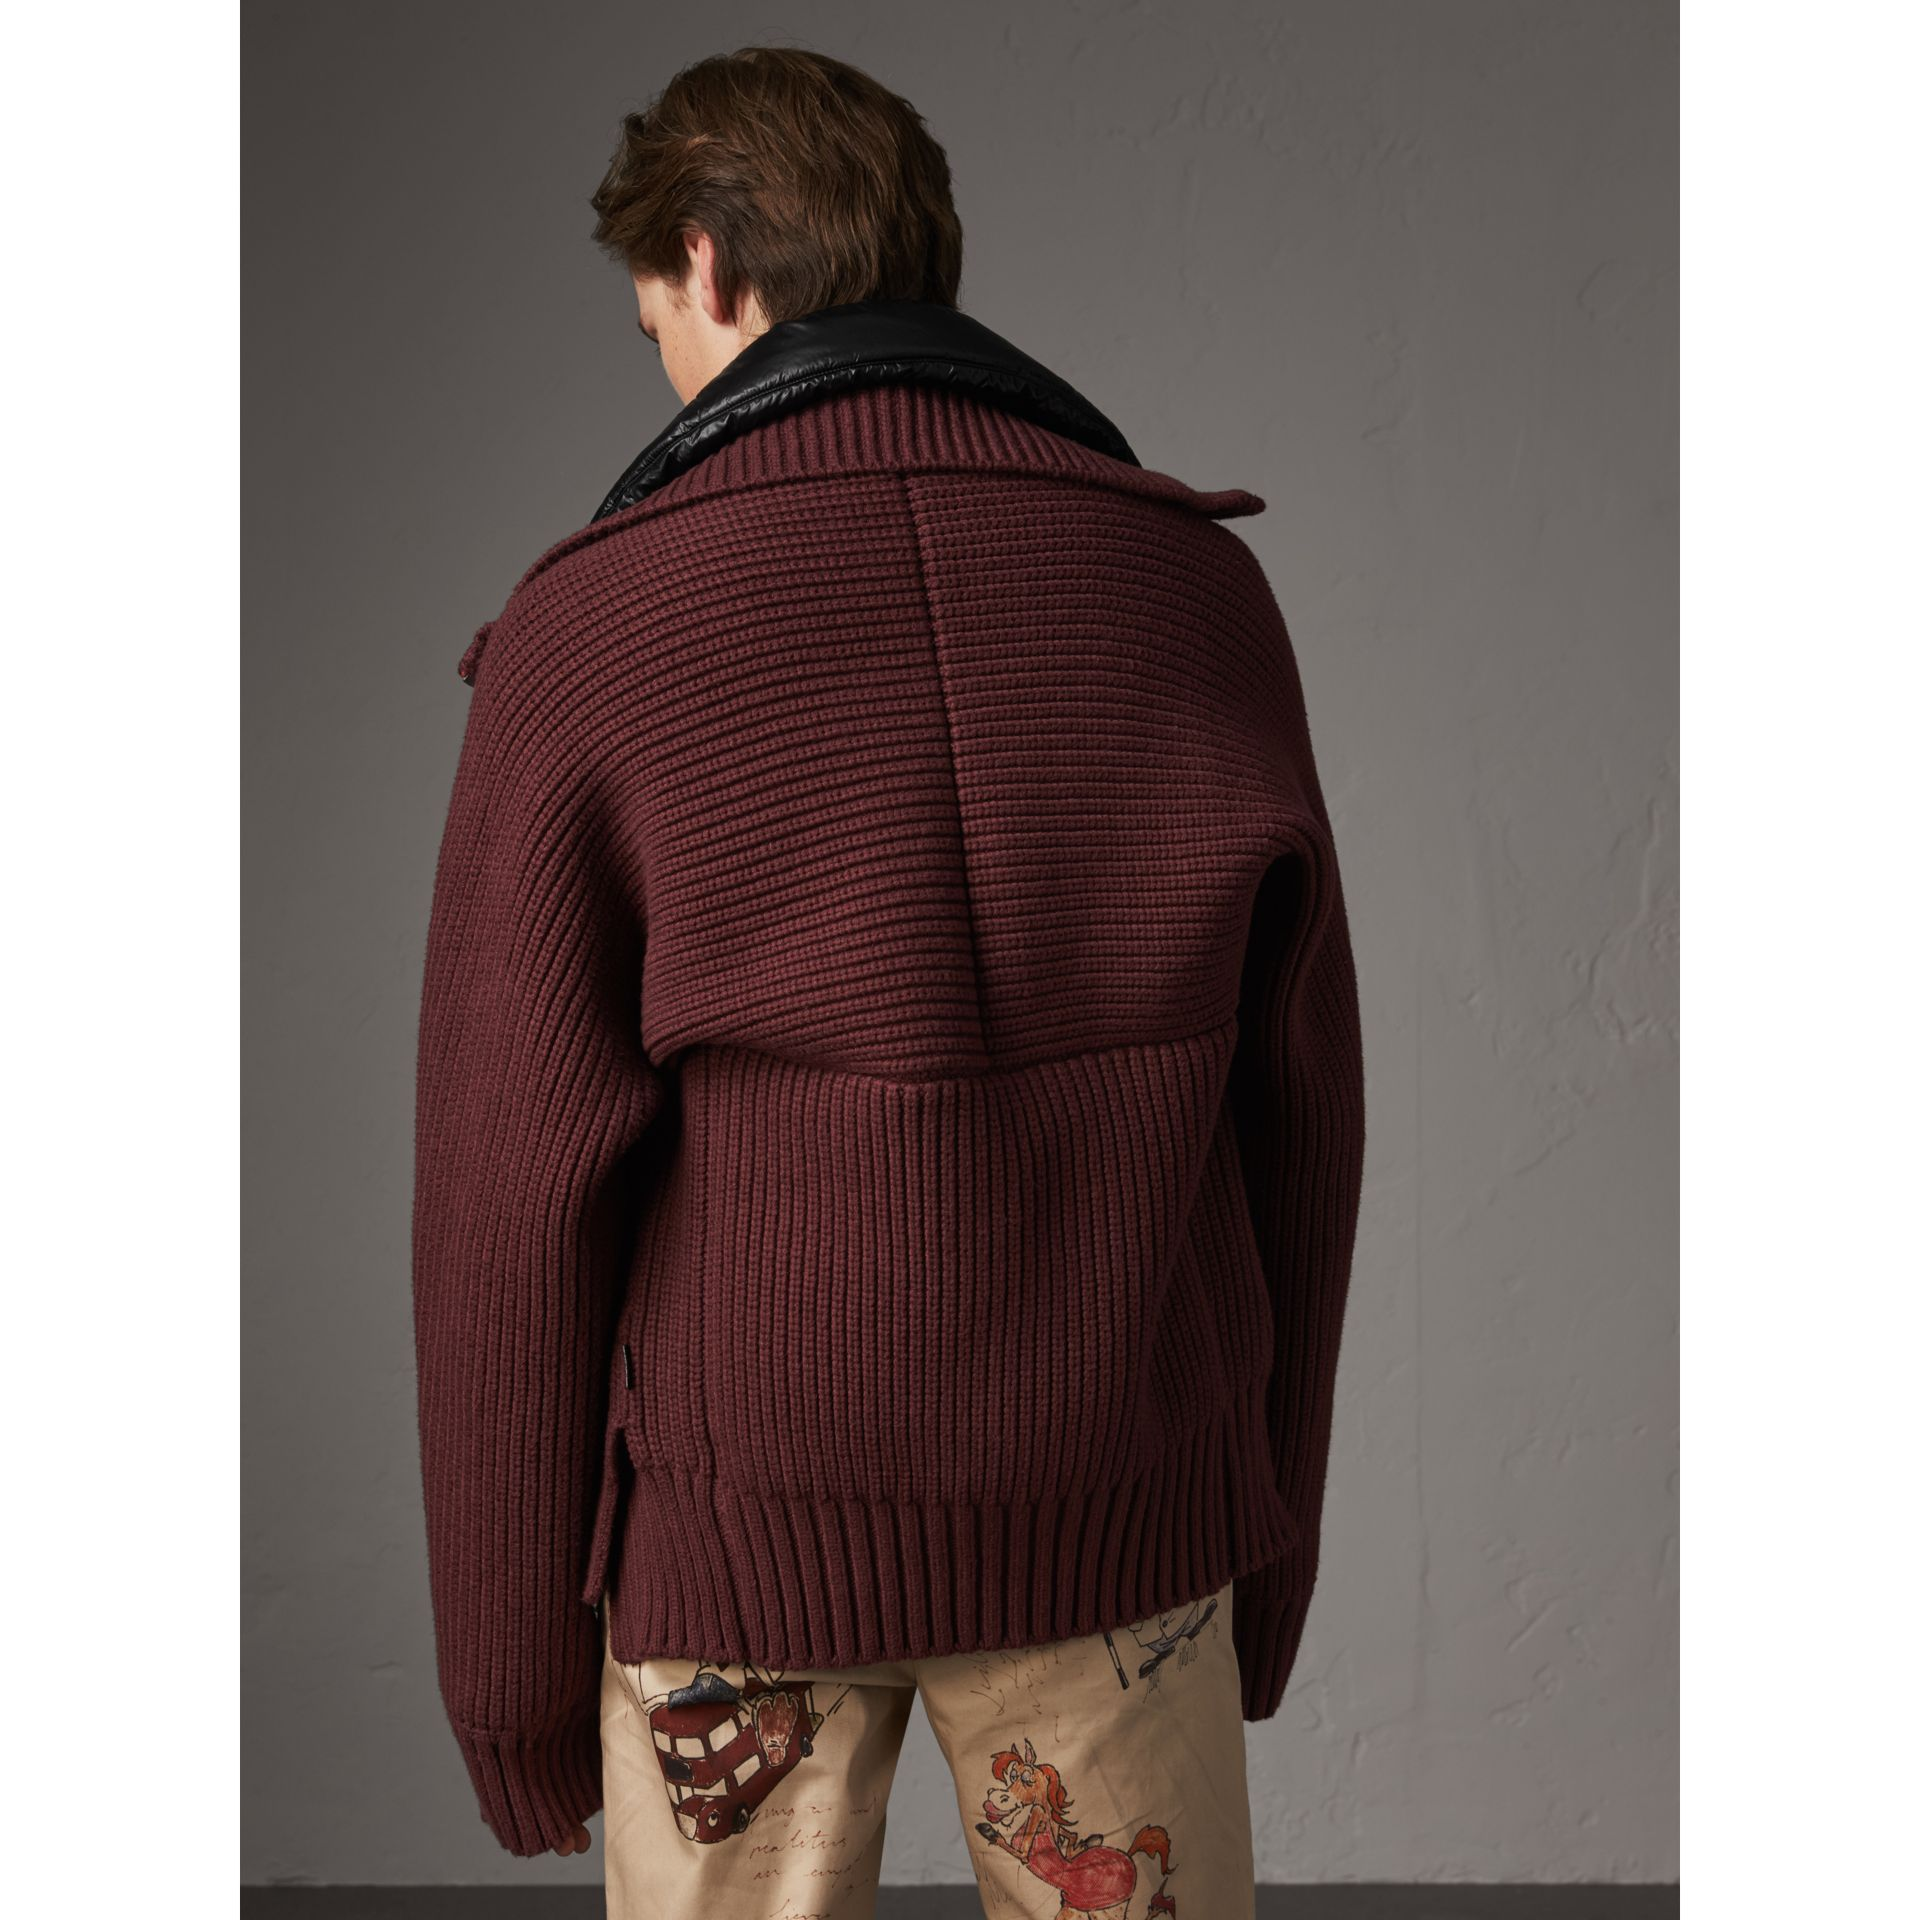 Rib Knit Cotton Blend Jacket with Down-filled Gilet in Mahogany Red - Men | Burberry Canada - gallery image 2